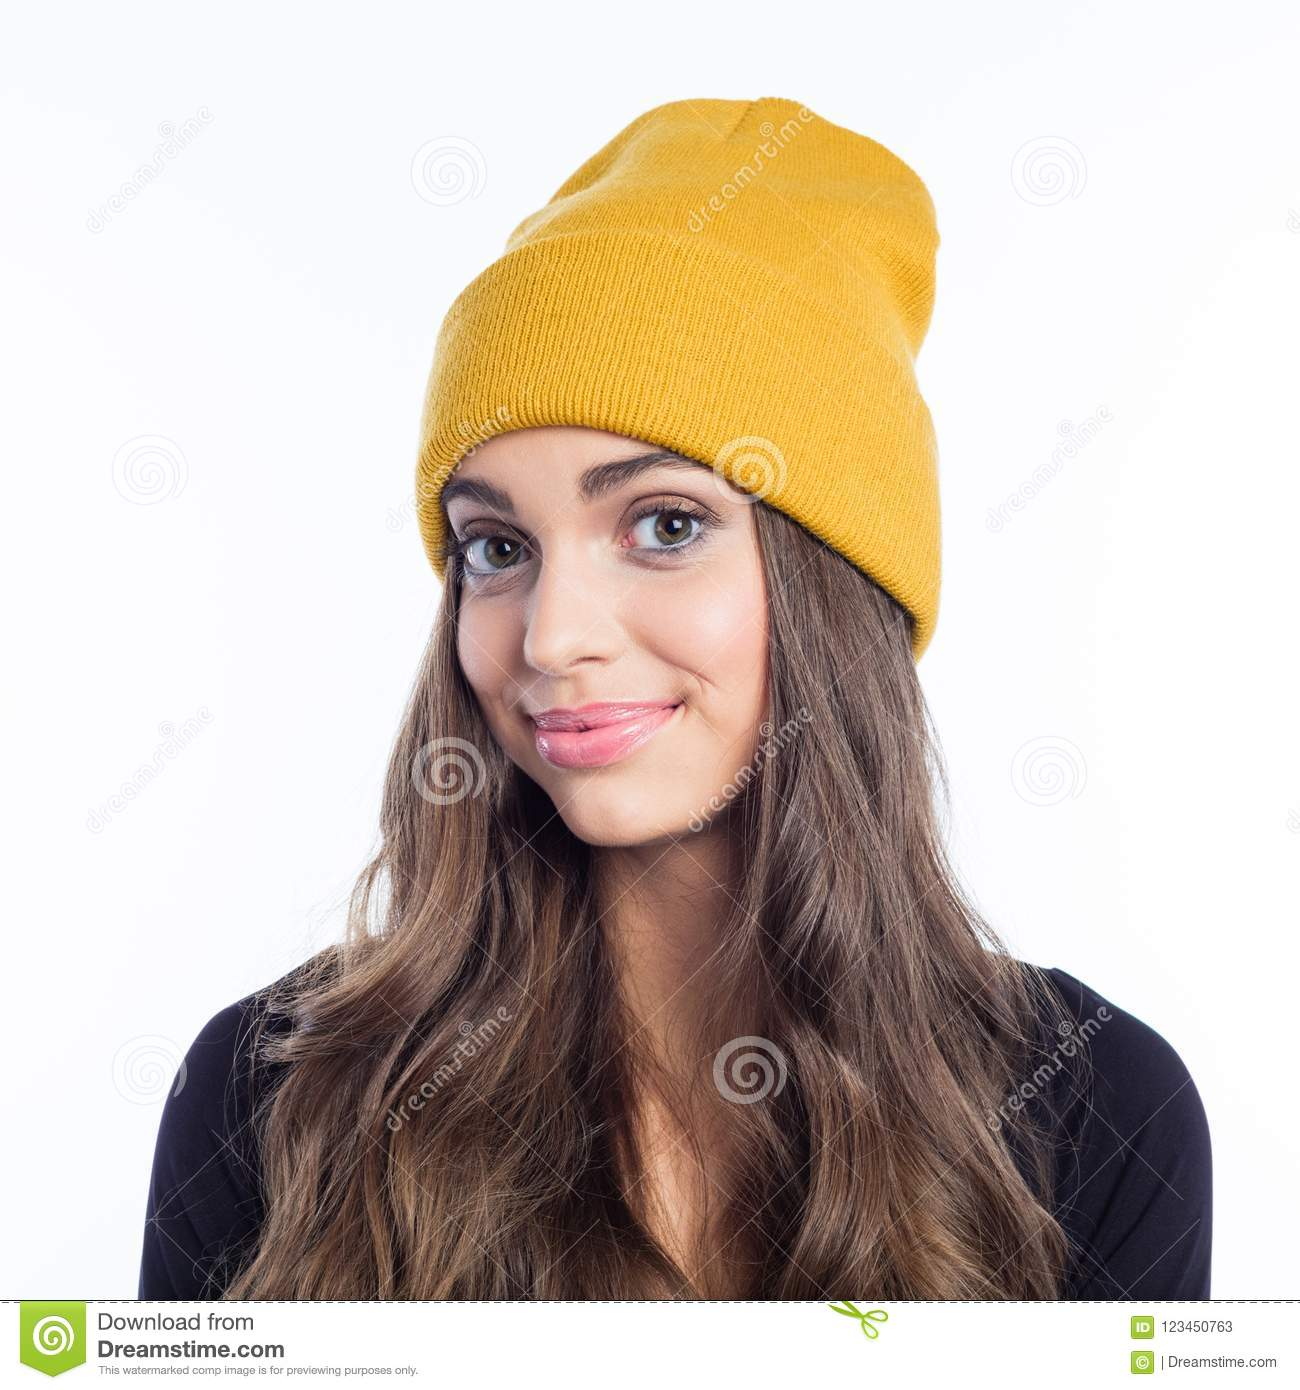 e3f50ed5857c8 Happy Long Hair Young Woman In Yellow Beanie Hat Stock Image - Image ...